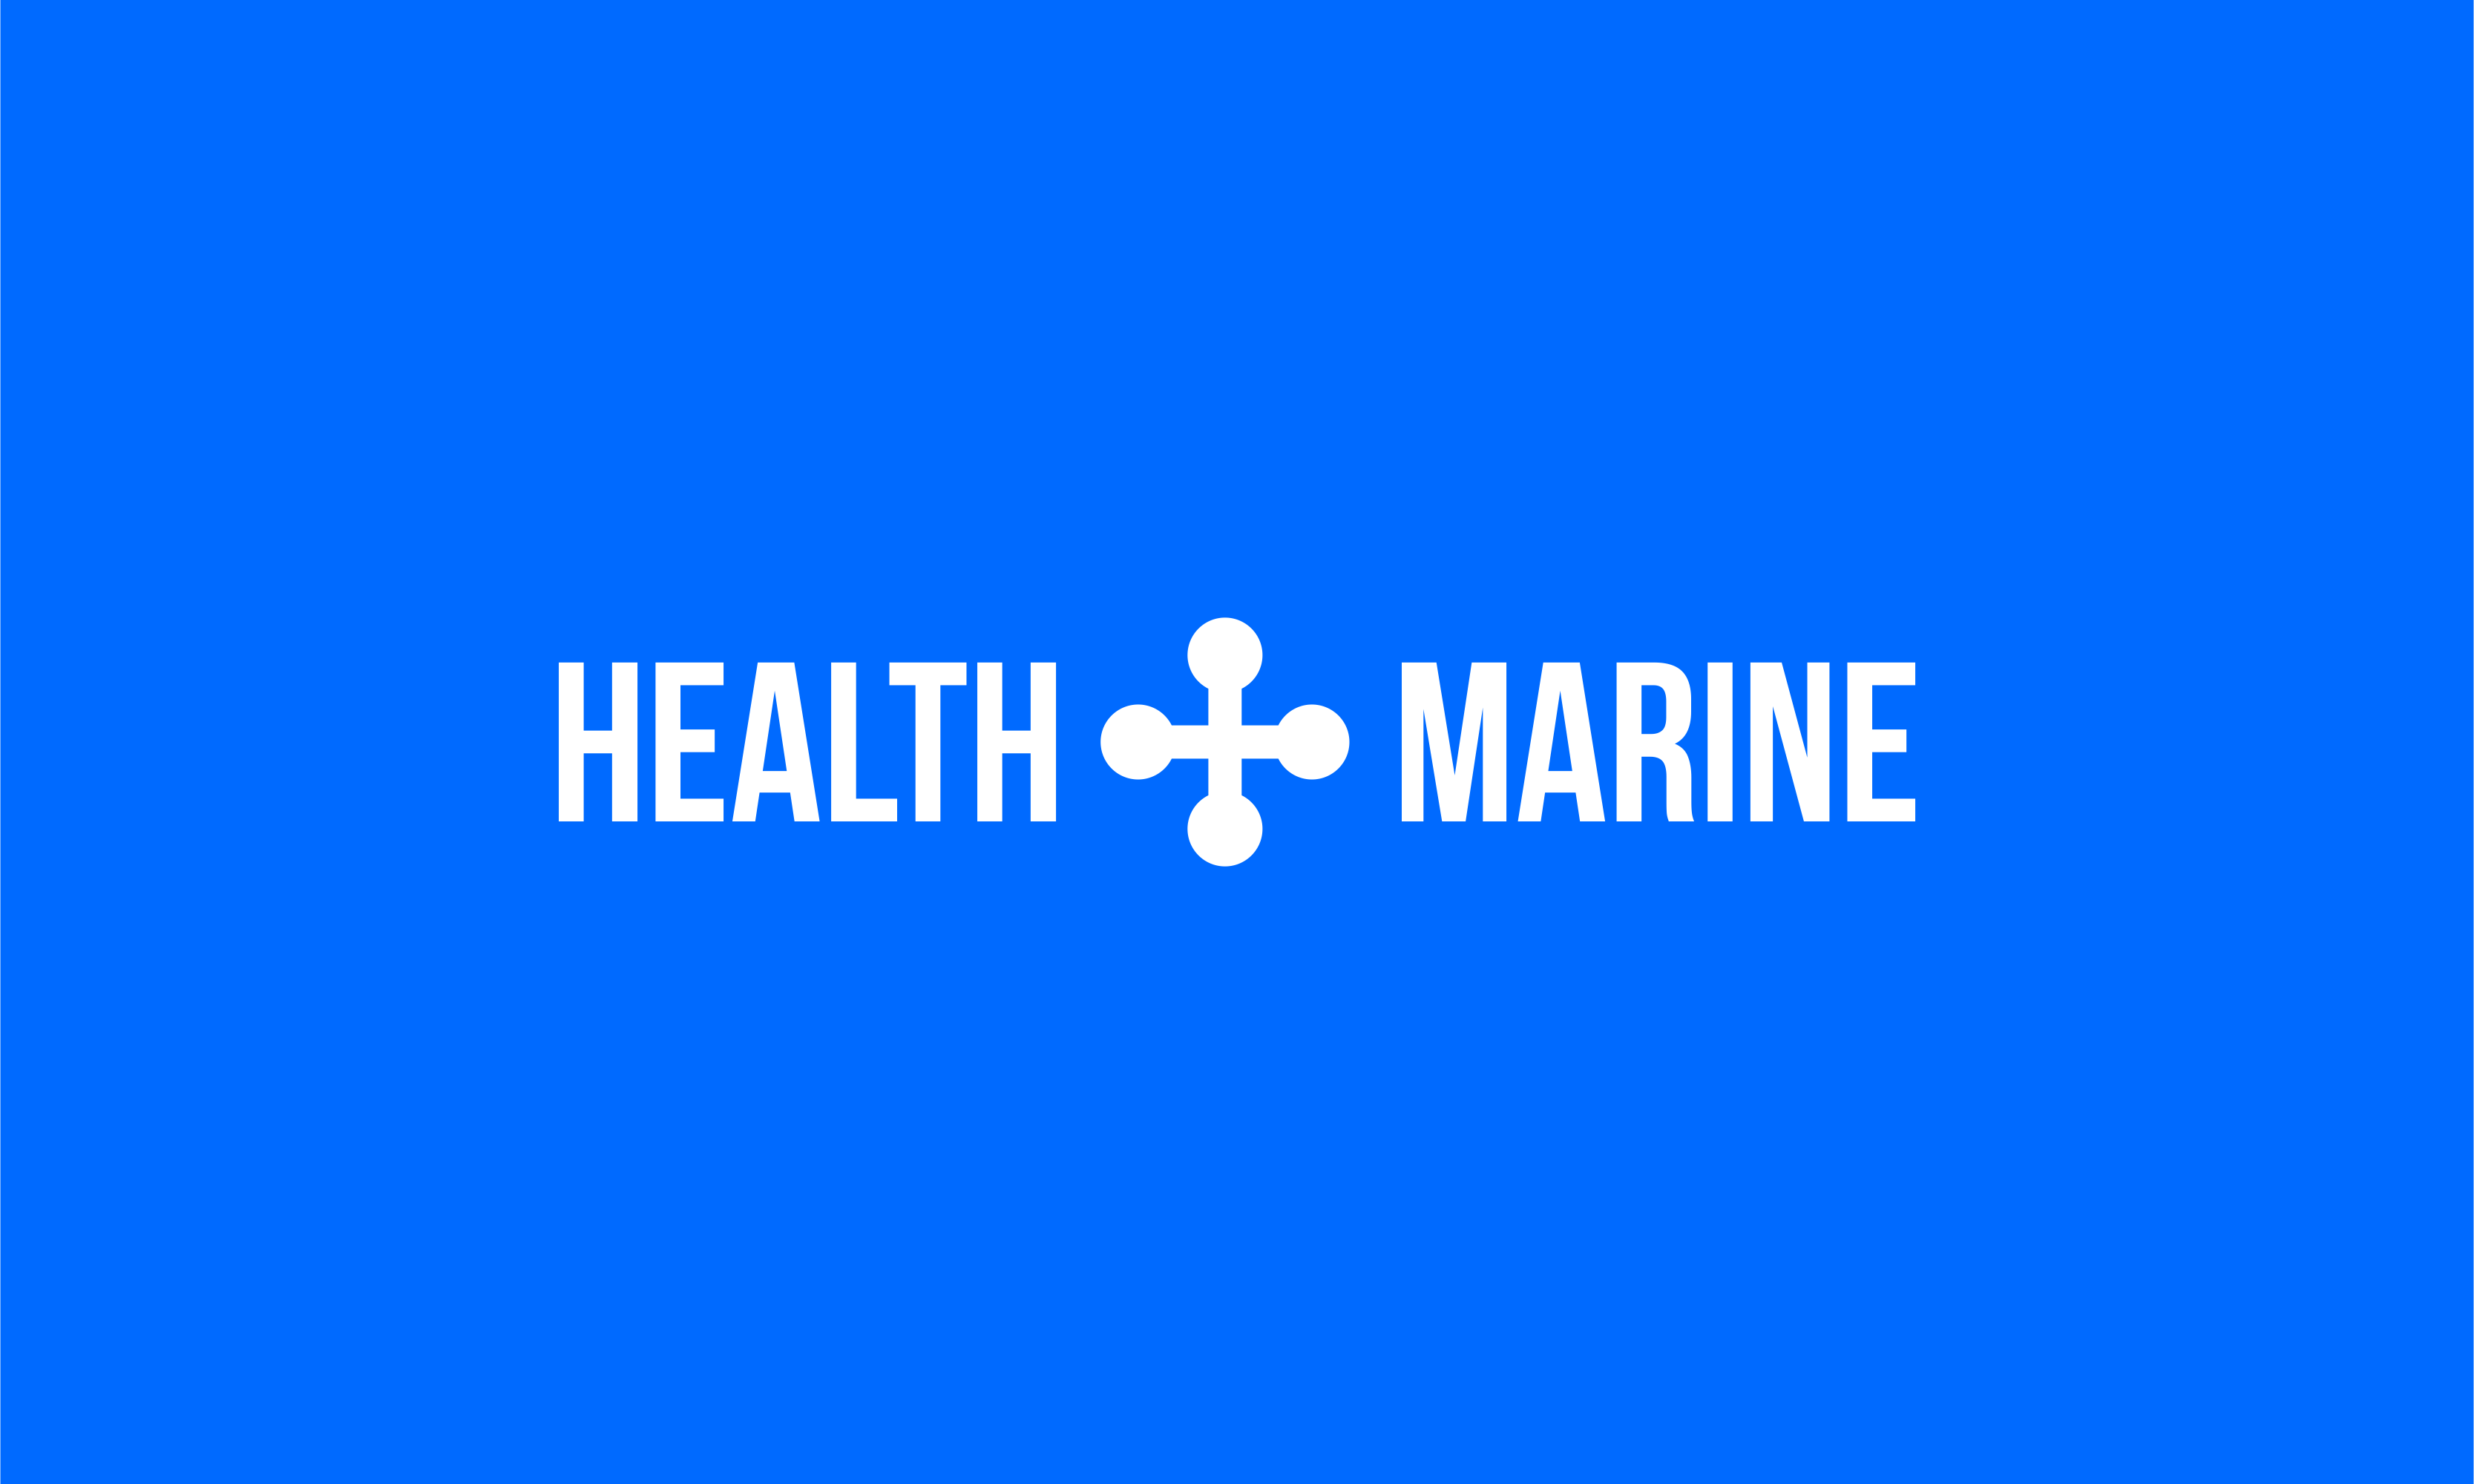 Healthmarine - Healthcare business name for sale